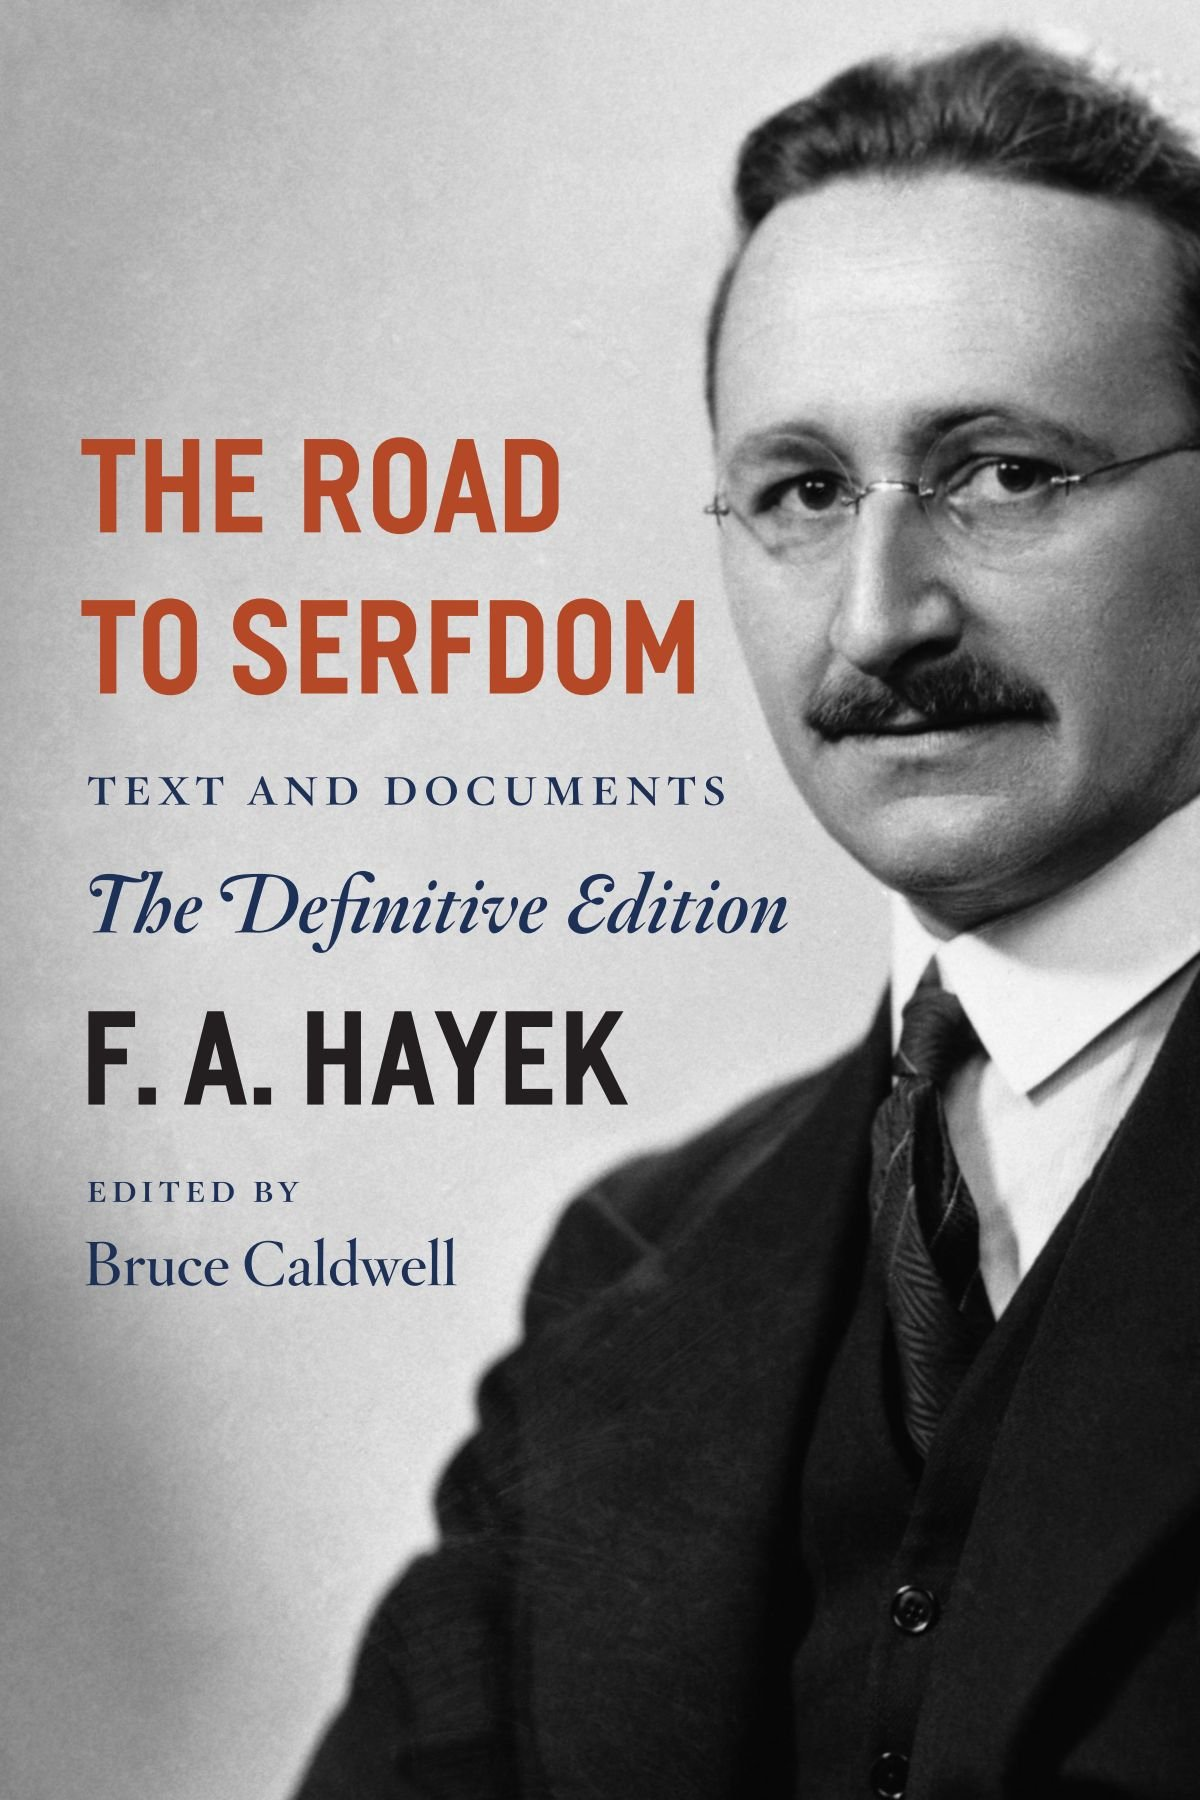 a review of economic freedom in the road to serfdom a book by friedrich hayek There is little that is new in the road to serfdom hayek's basic argument (freidrich hayek, american economic review -review : of friedrich hayek.